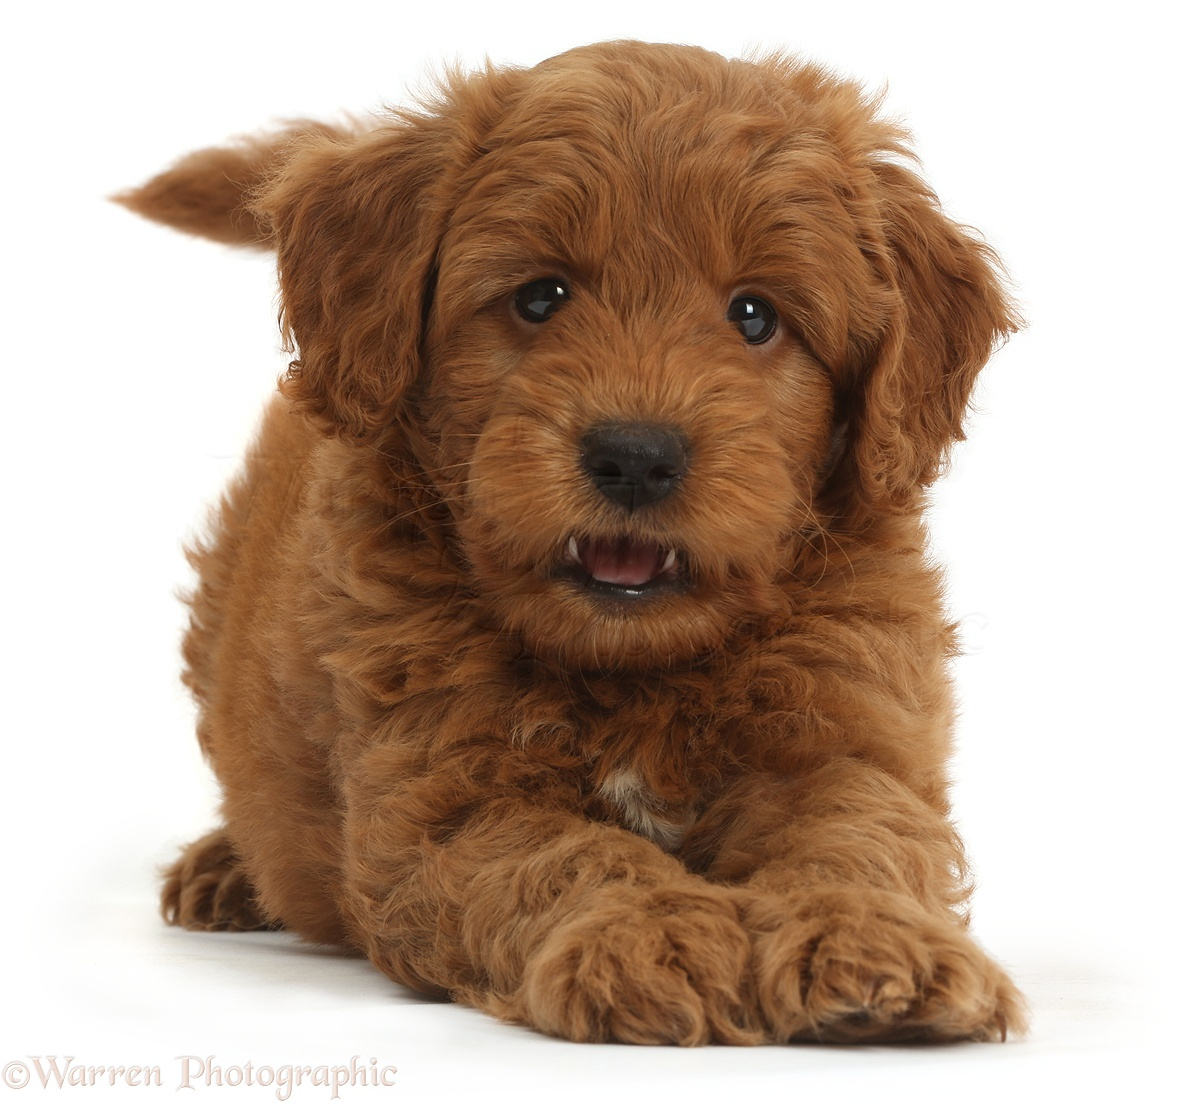 Dog Cute Playful Red F1b Goldendoodle Puppy Photo Wp36749